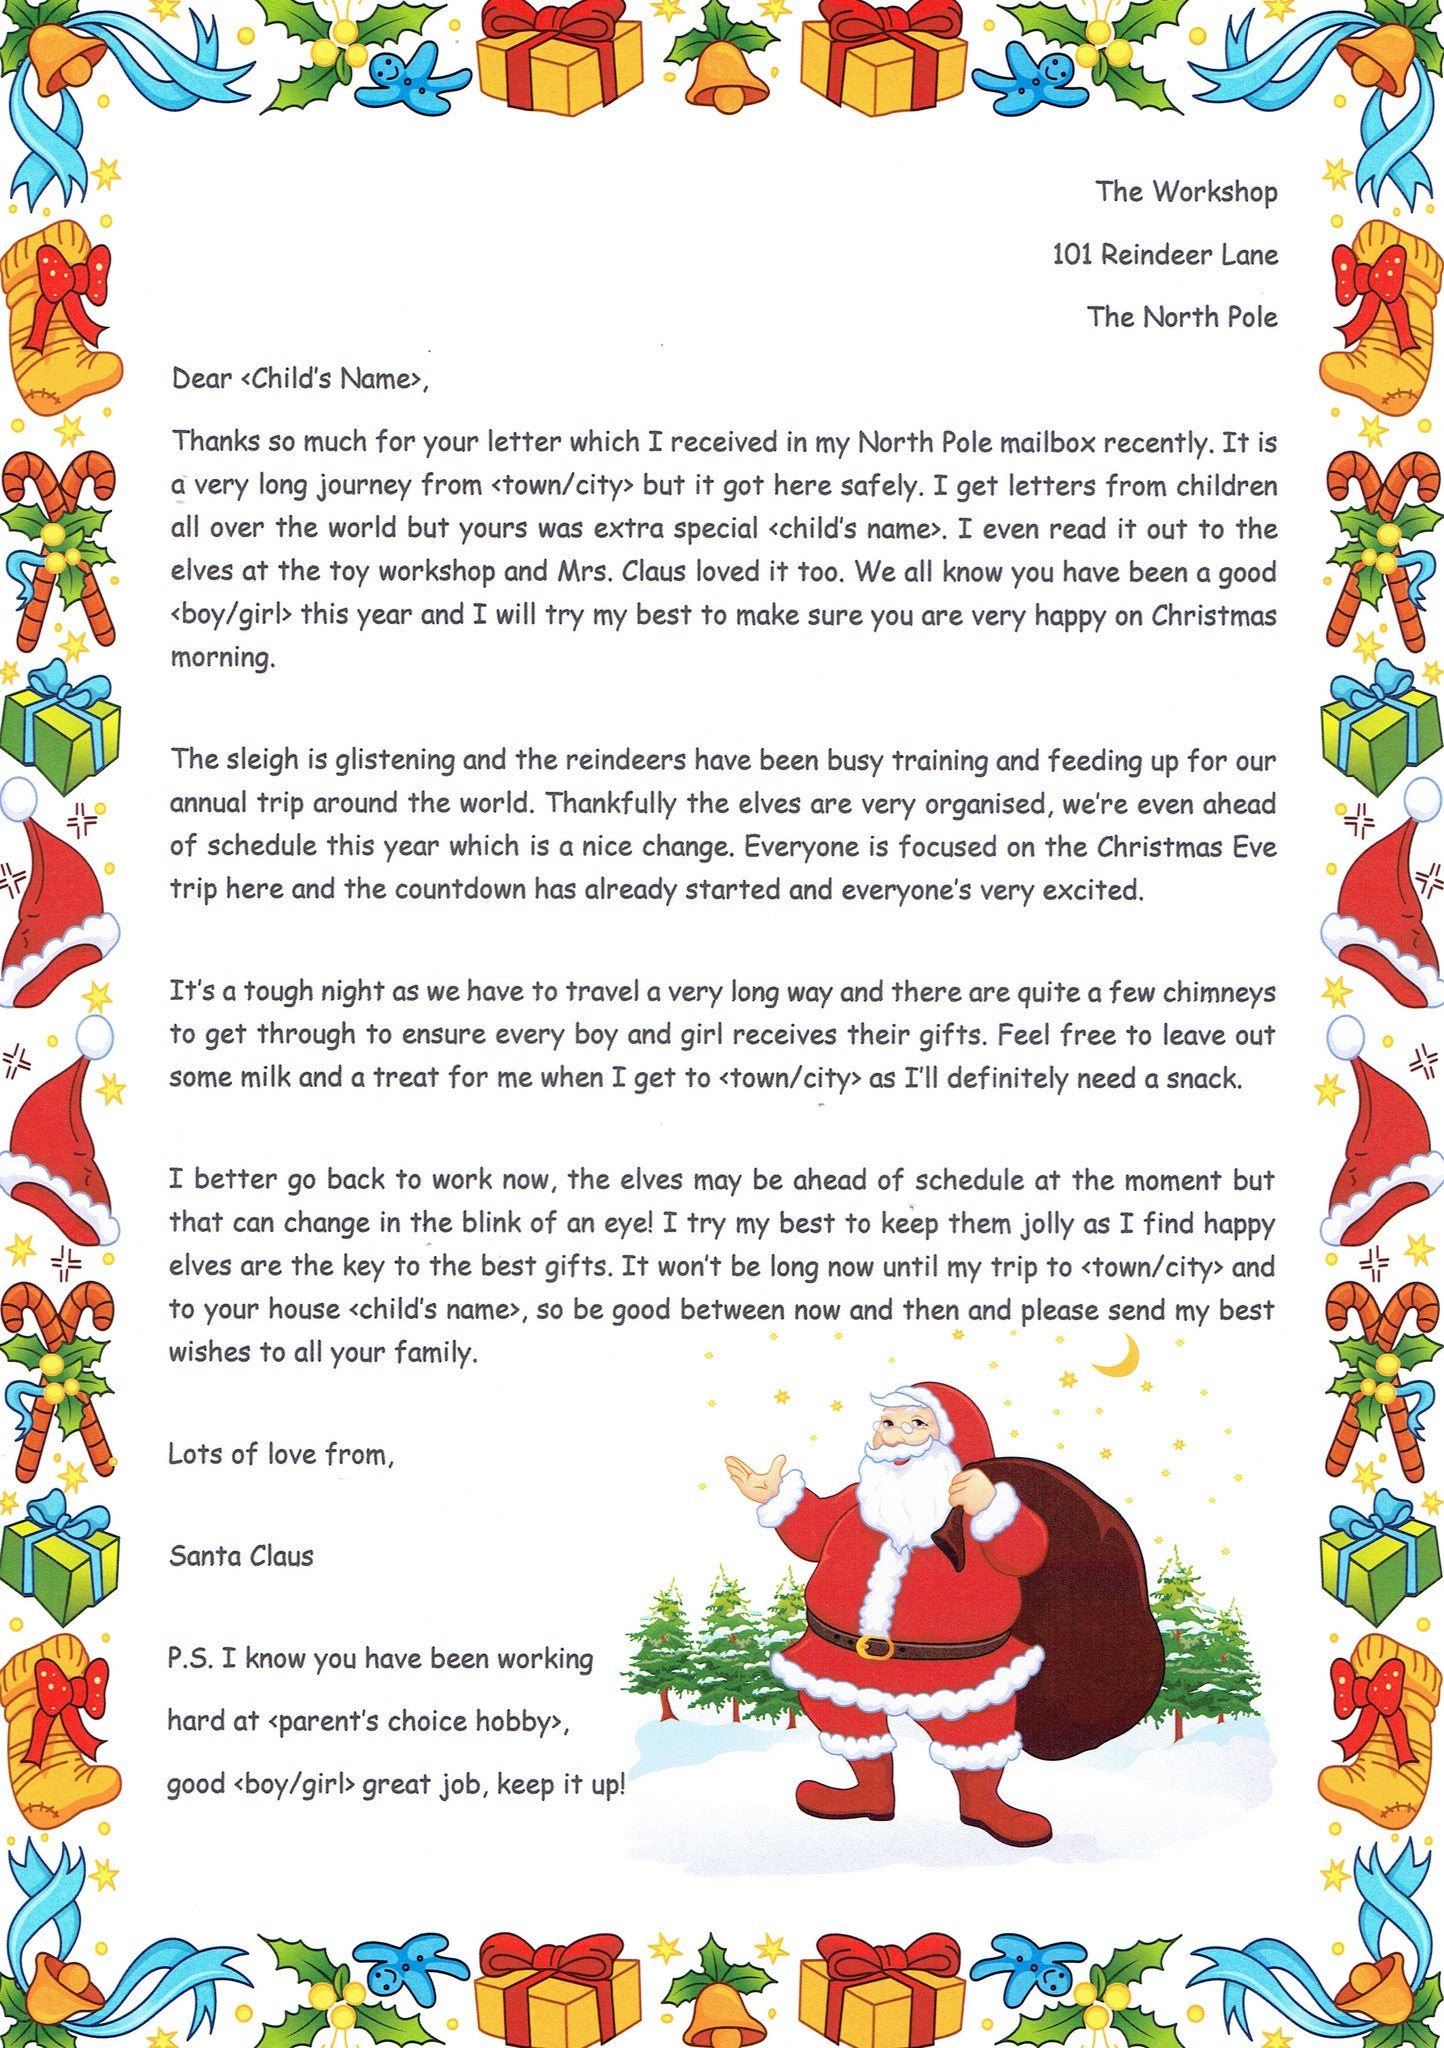 Santa – A reminder to be good